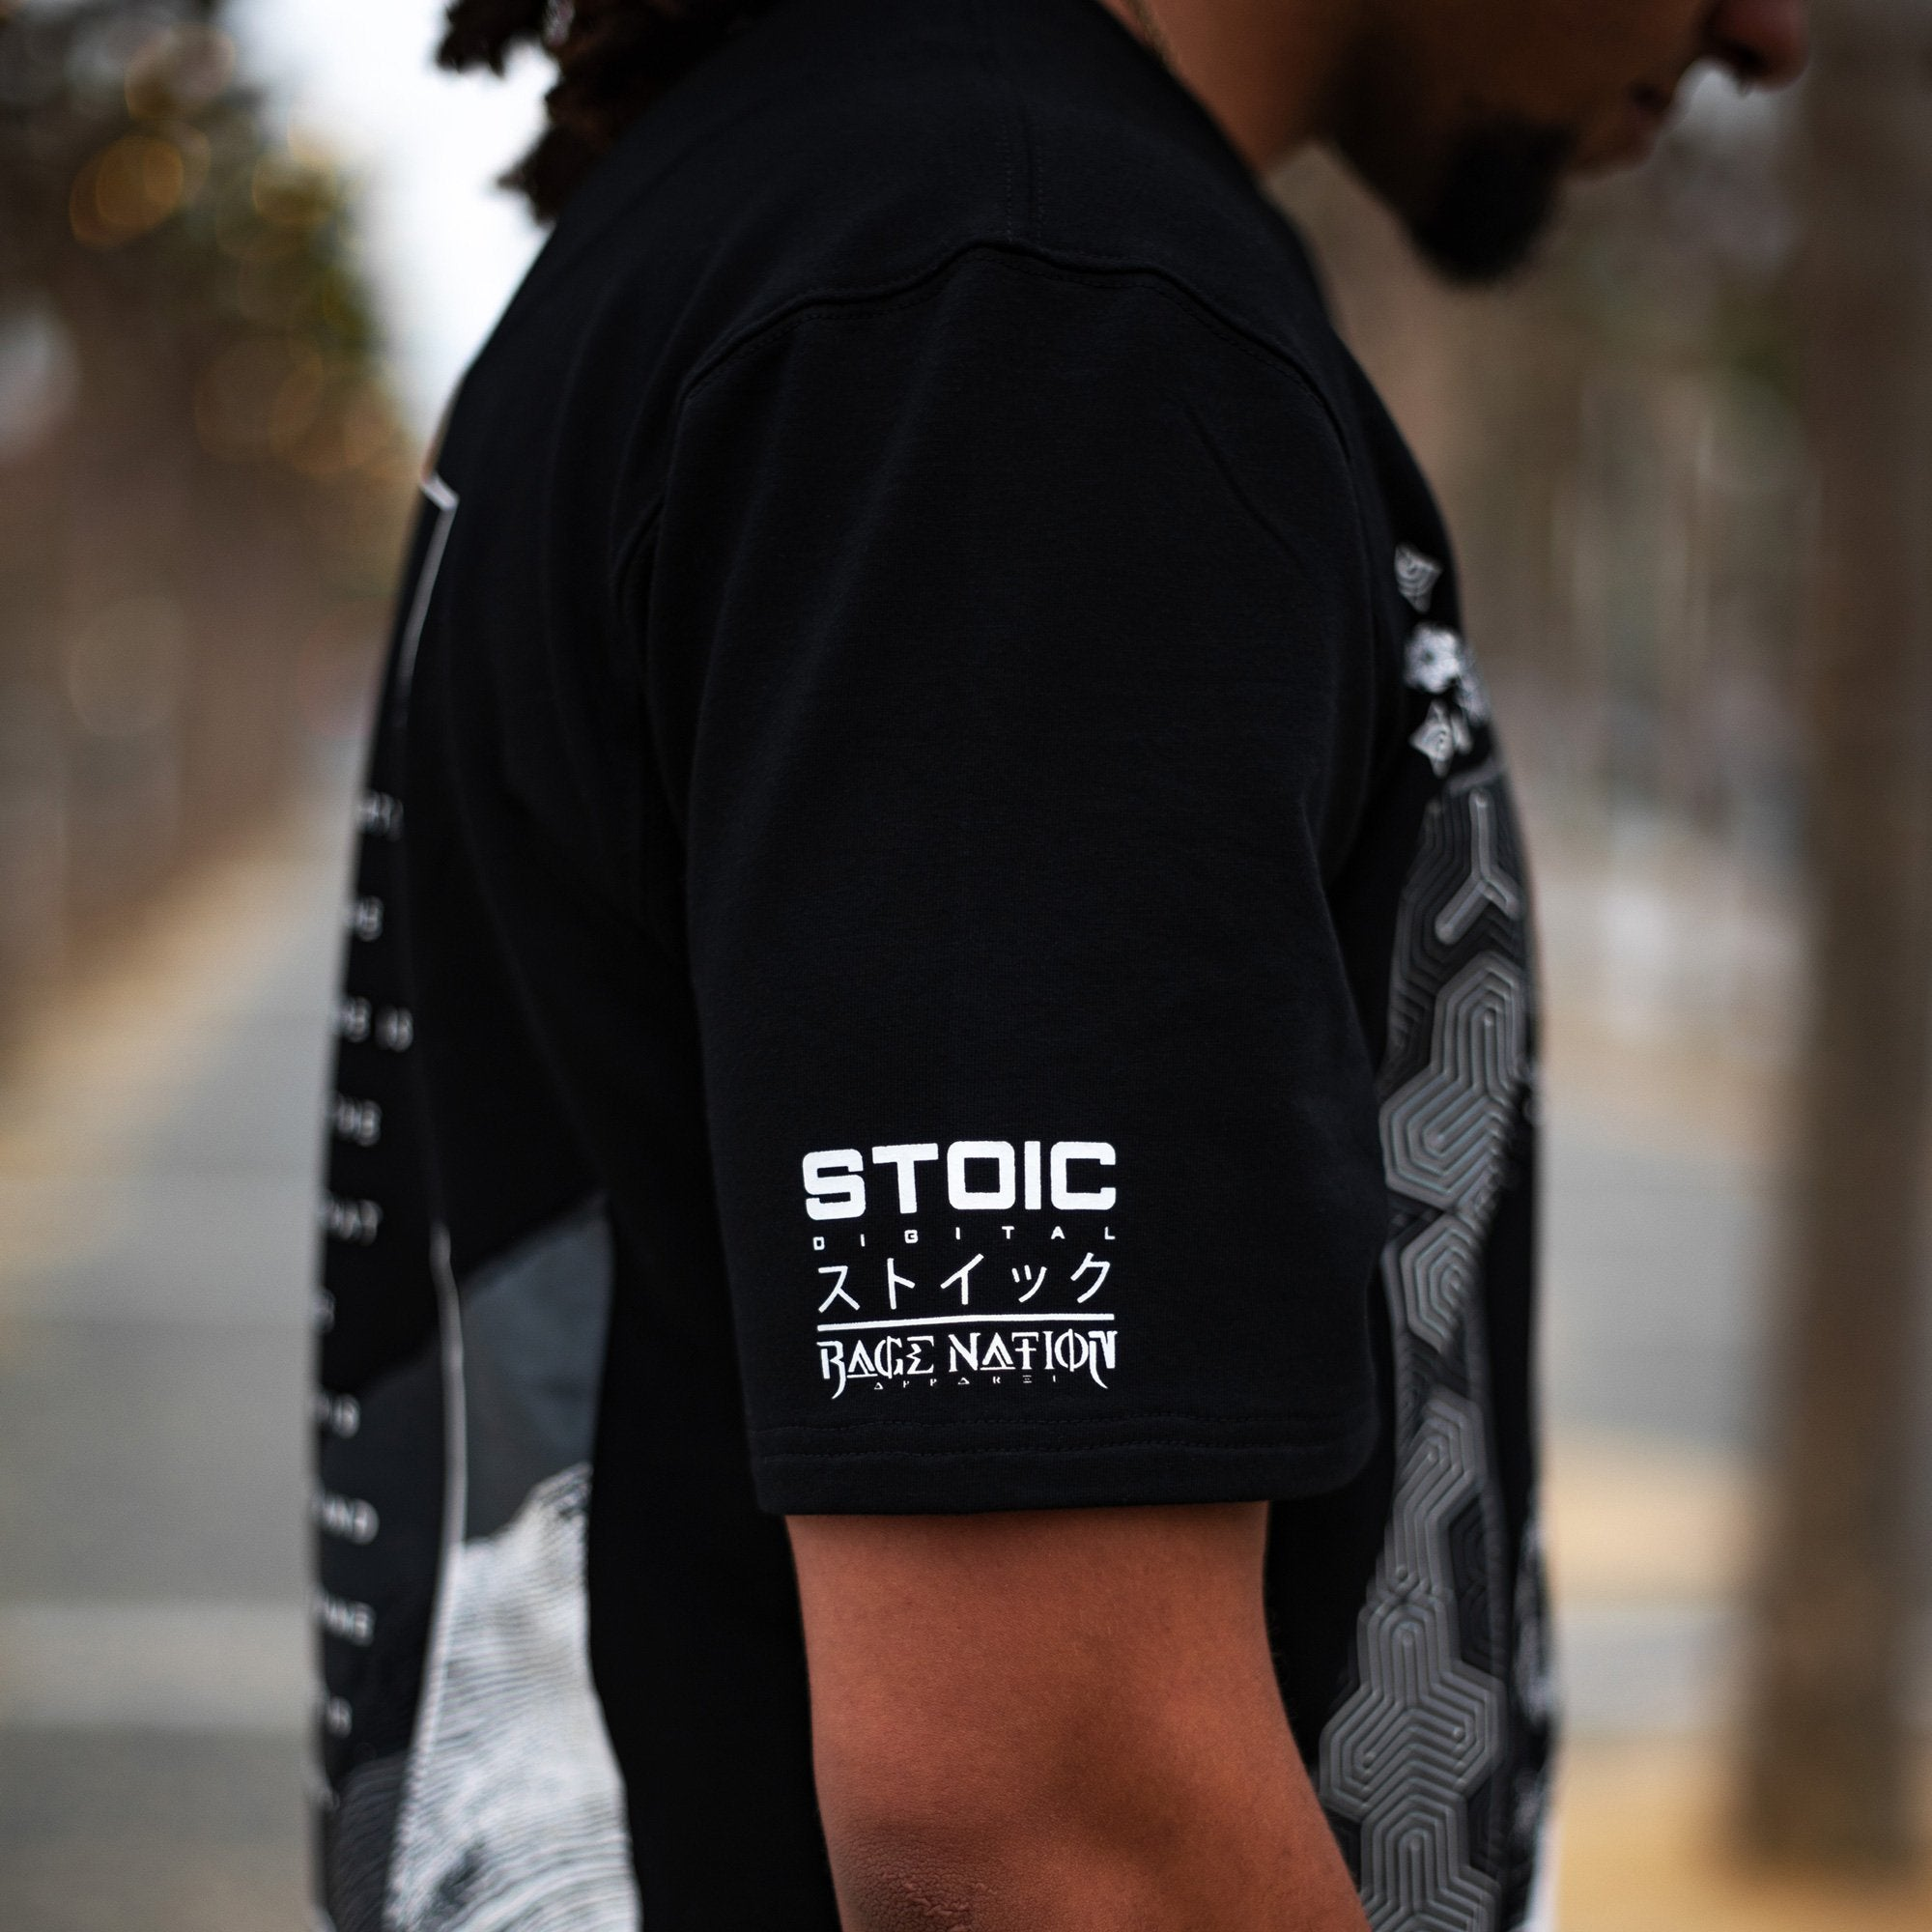 MEDITATIONS • STOIC DIGITAL • Luxury Fabric Droptail T-shirt